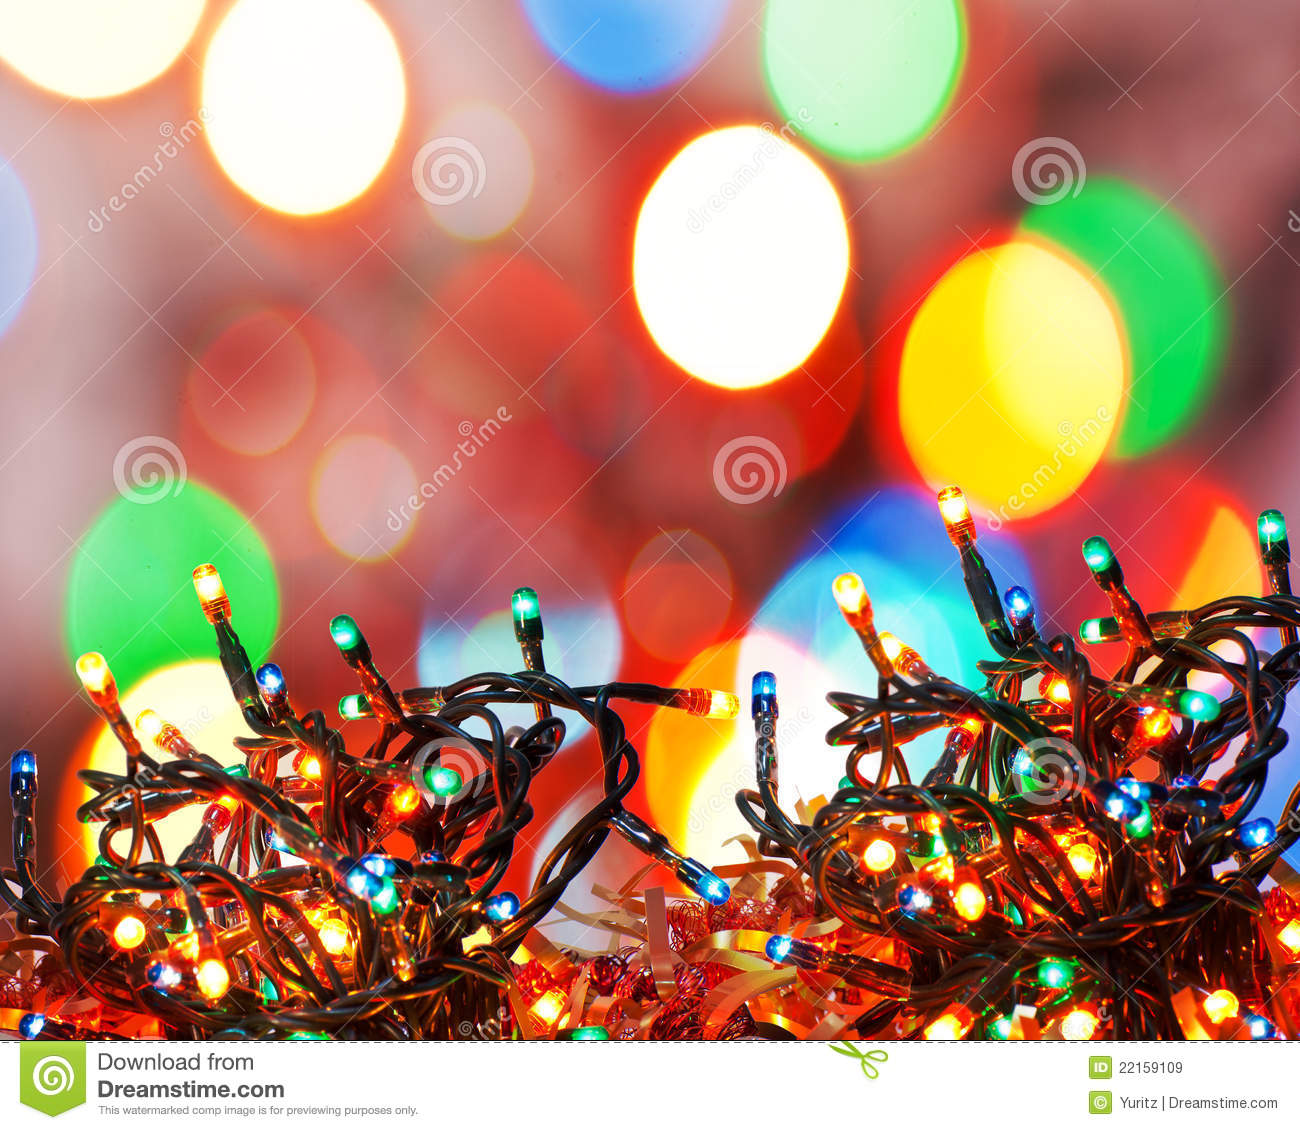 Christmas Lights Royalty Free Stock Images - Image: 22159109